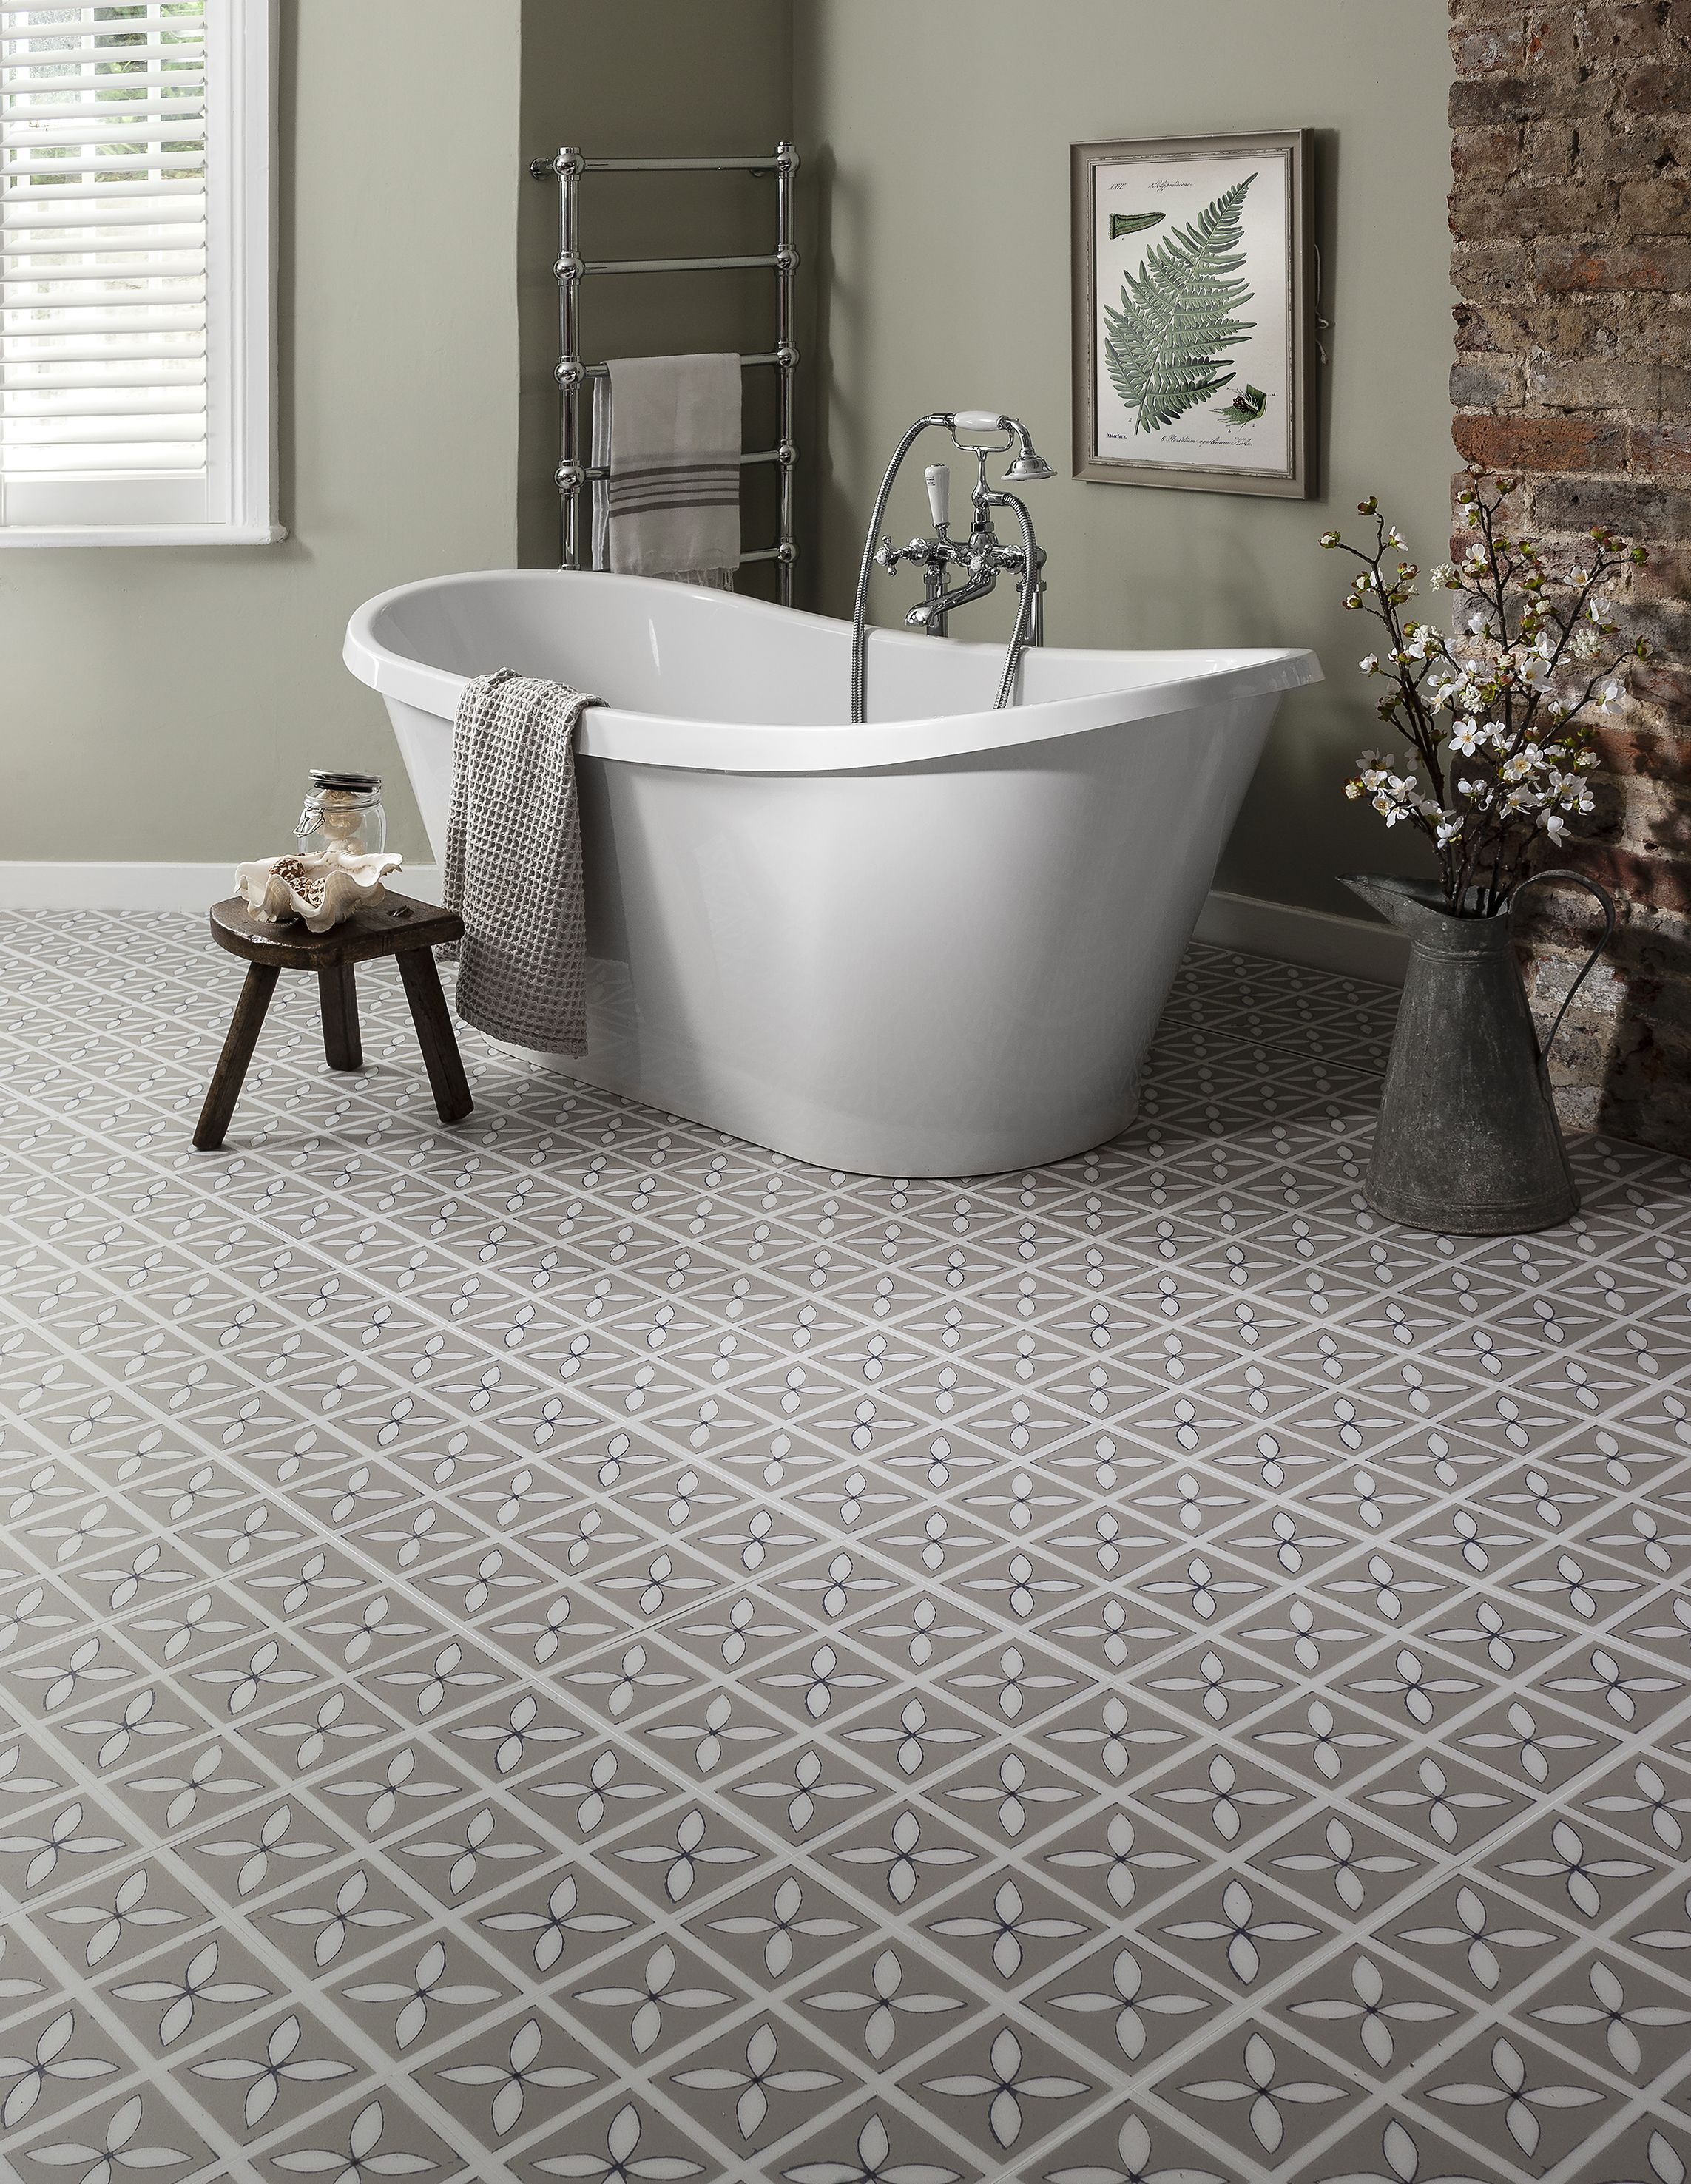 Our Dee Hardwicke Lattice Vinyl Tile In Pebble Grey Looks Great When Used Across A Whole Bathroom Floor Its Subtle Floral Pattern Brings Touch Of Classic